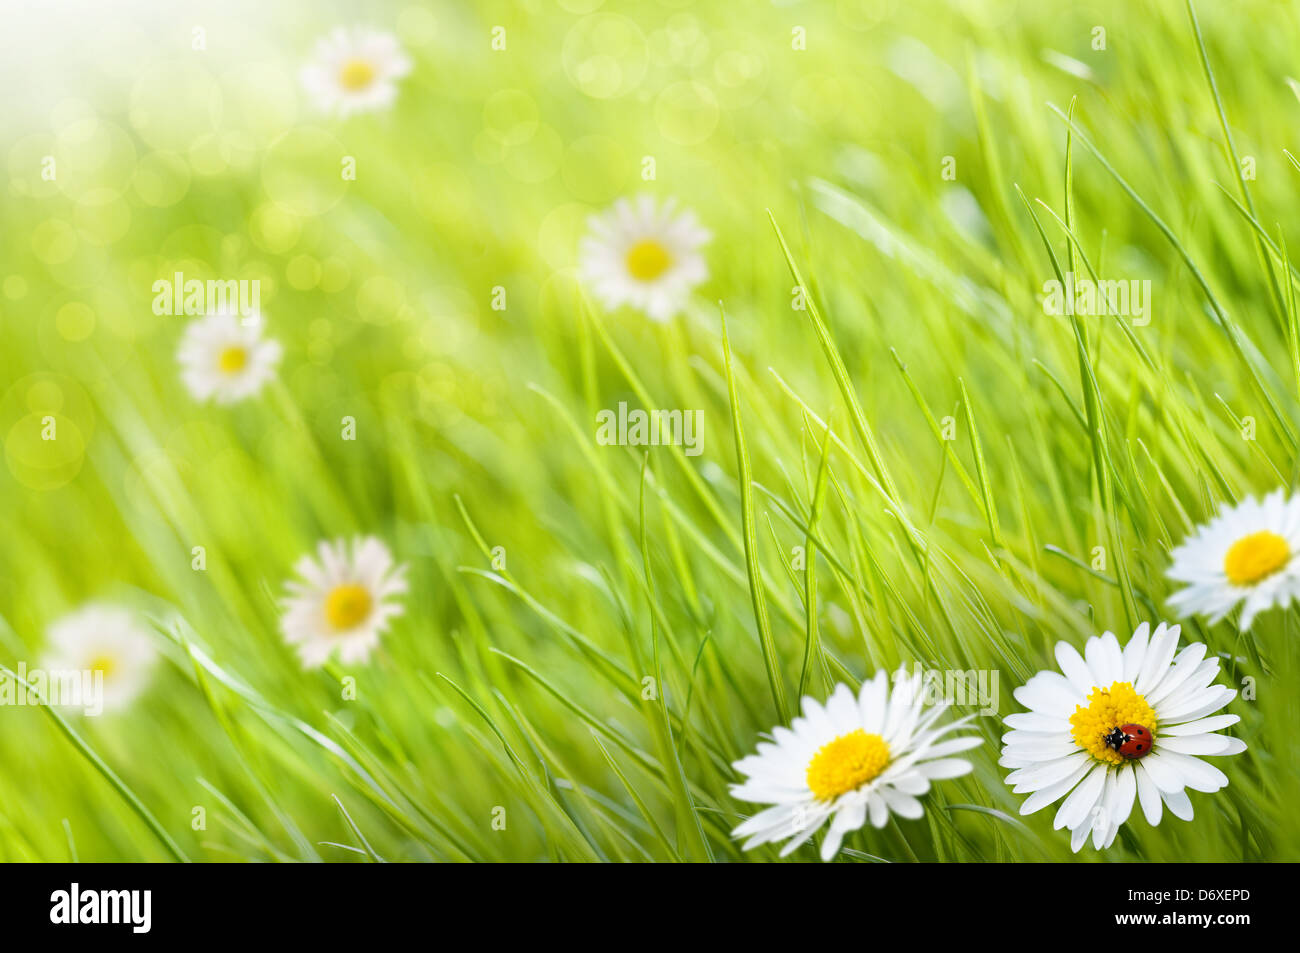 Grass background with daisies flowers and one ladybird this is a grass background with daisies flowers and one ladybird this is a sunny day image is blurry on the left side for copy space izmirmasajfo